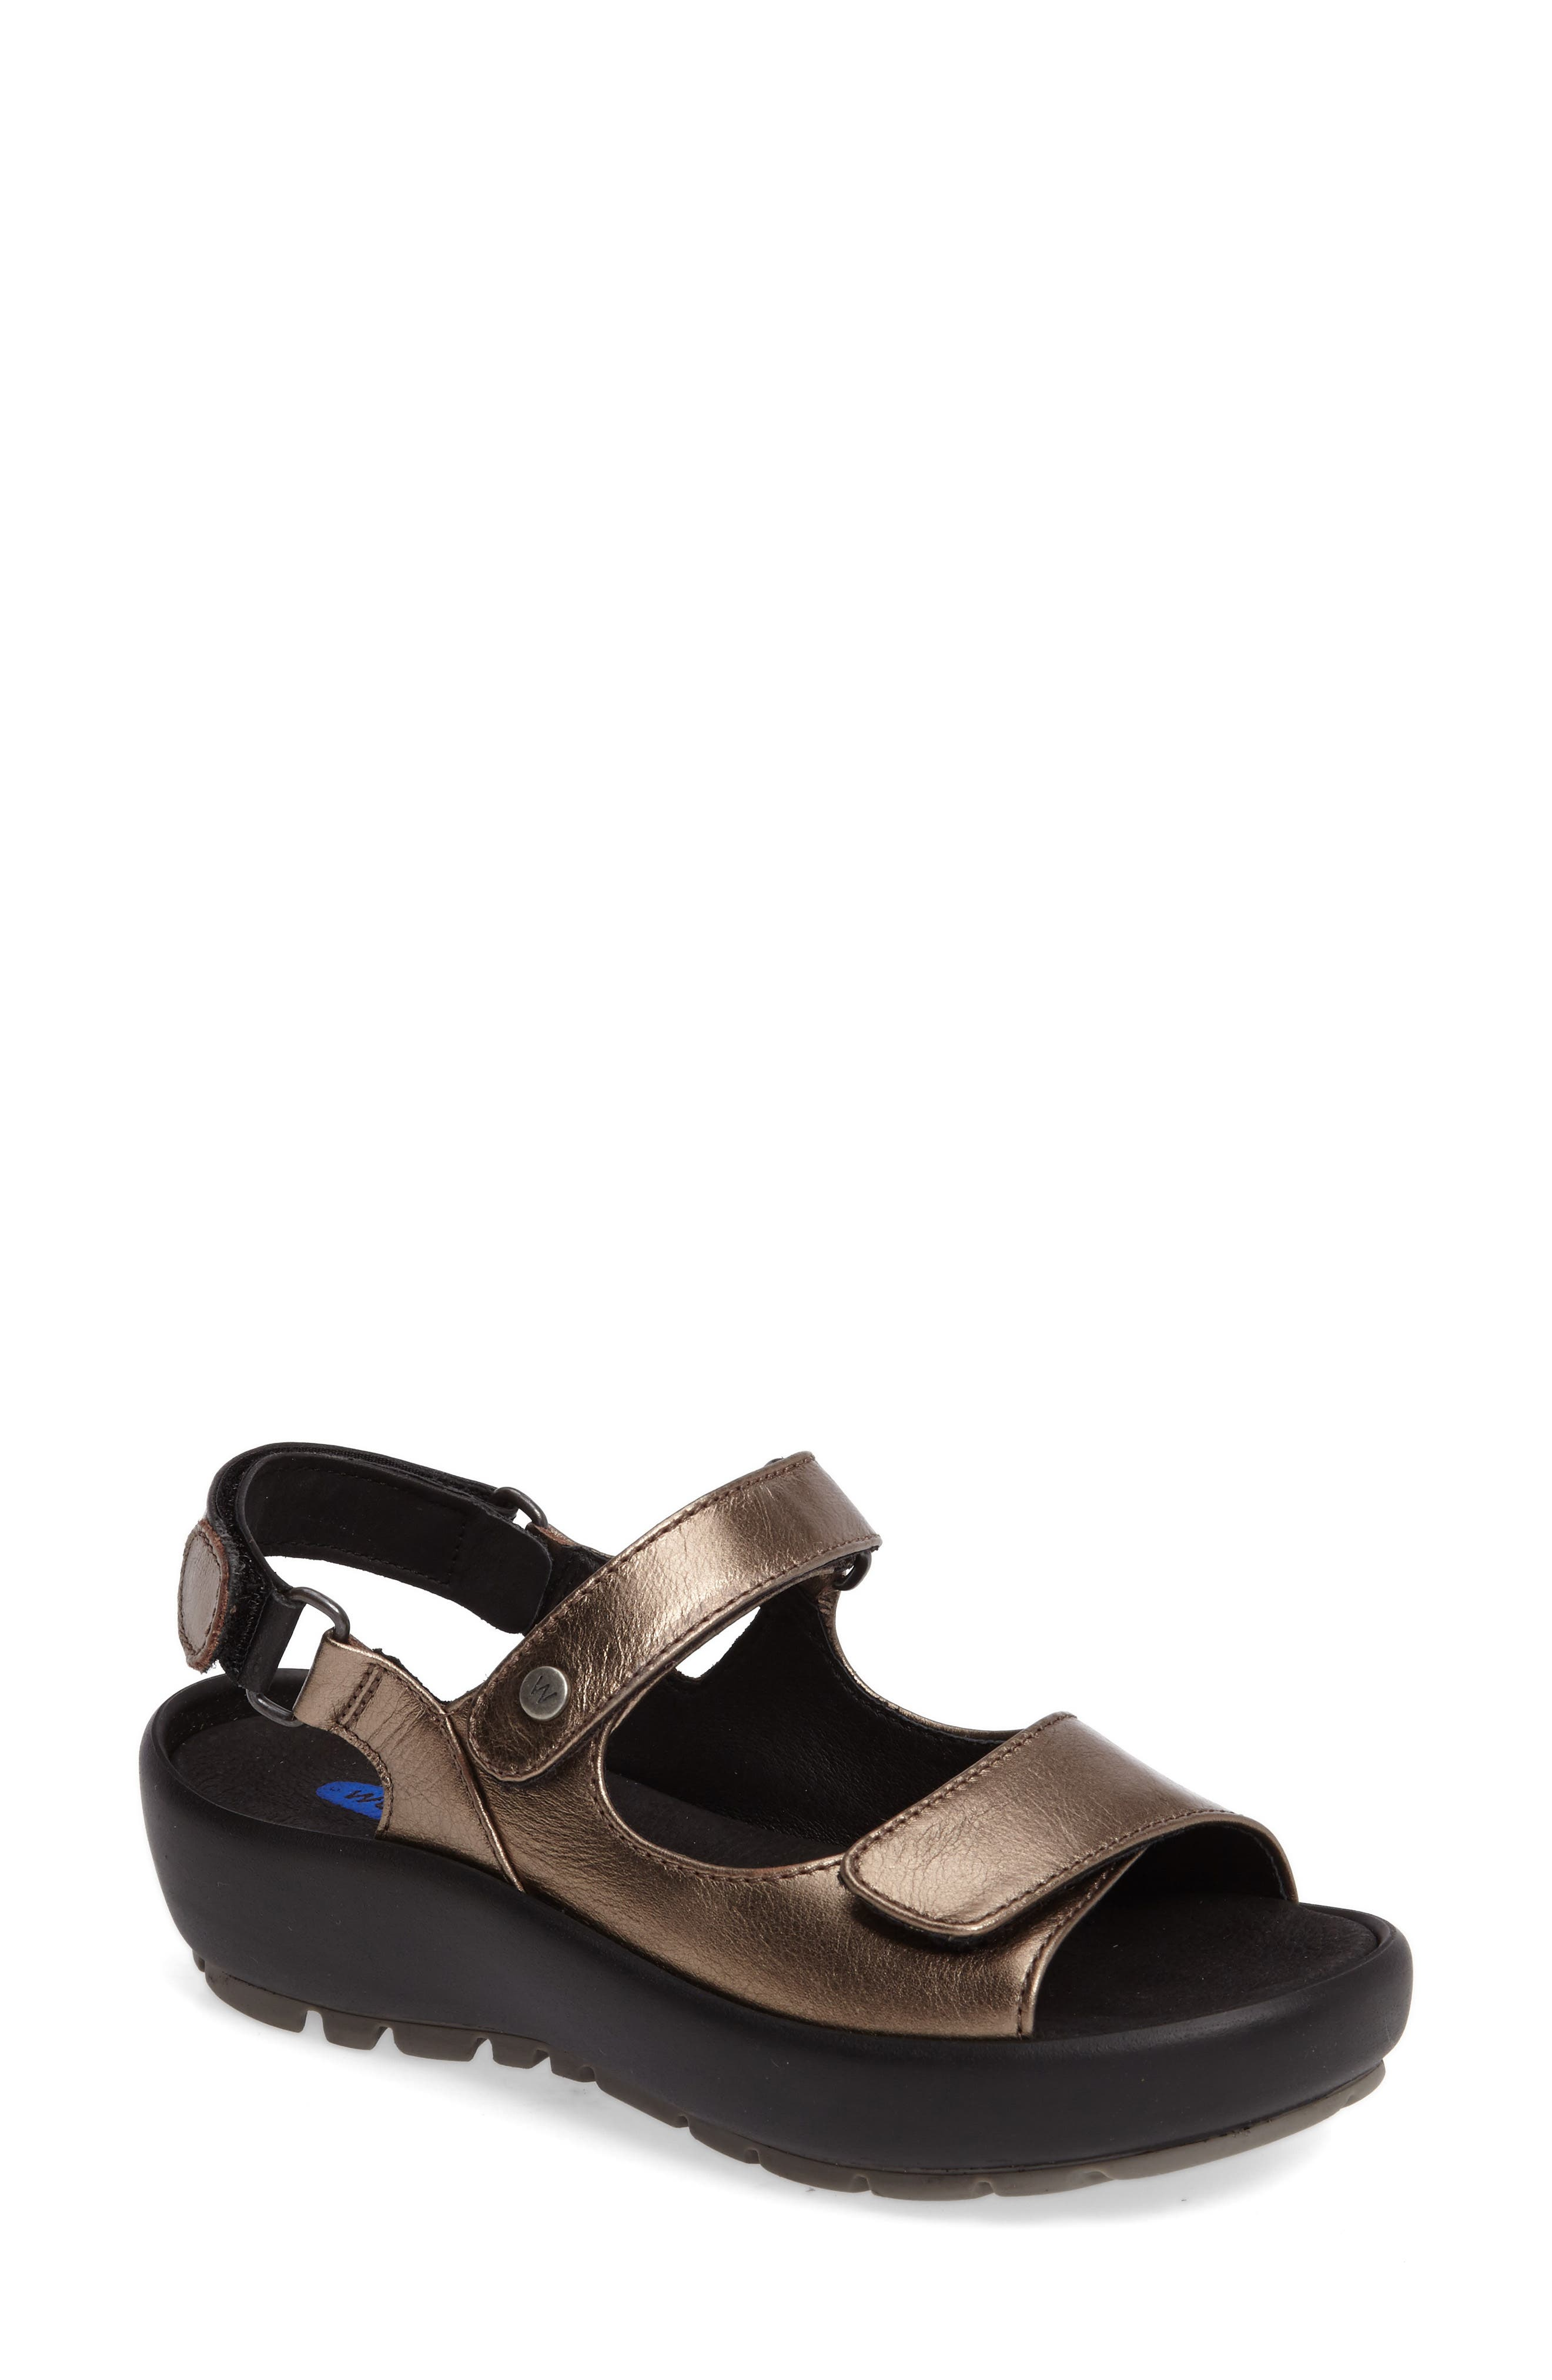 Rio Sandal,                             Main thumbnail 1, color,                             Bronze Metallic Leather